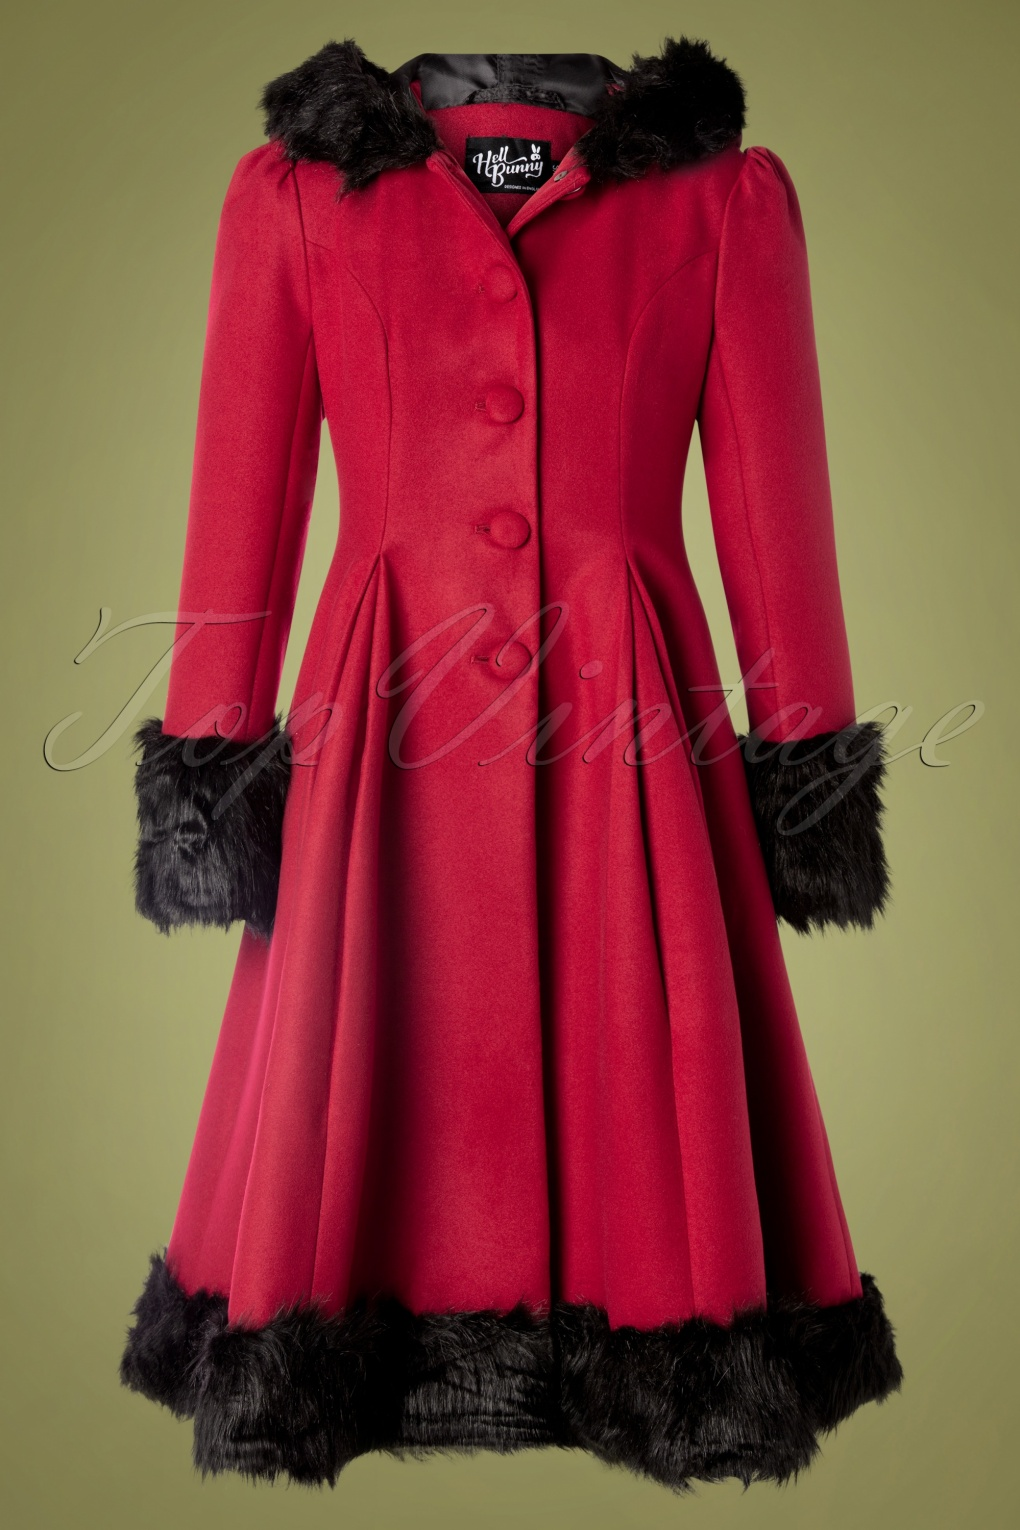 Vintage Coats & Jackets | Retro Coats and Jackets 30s Elvira Coat in Burgundy £122.48 AT vintagedancer.com